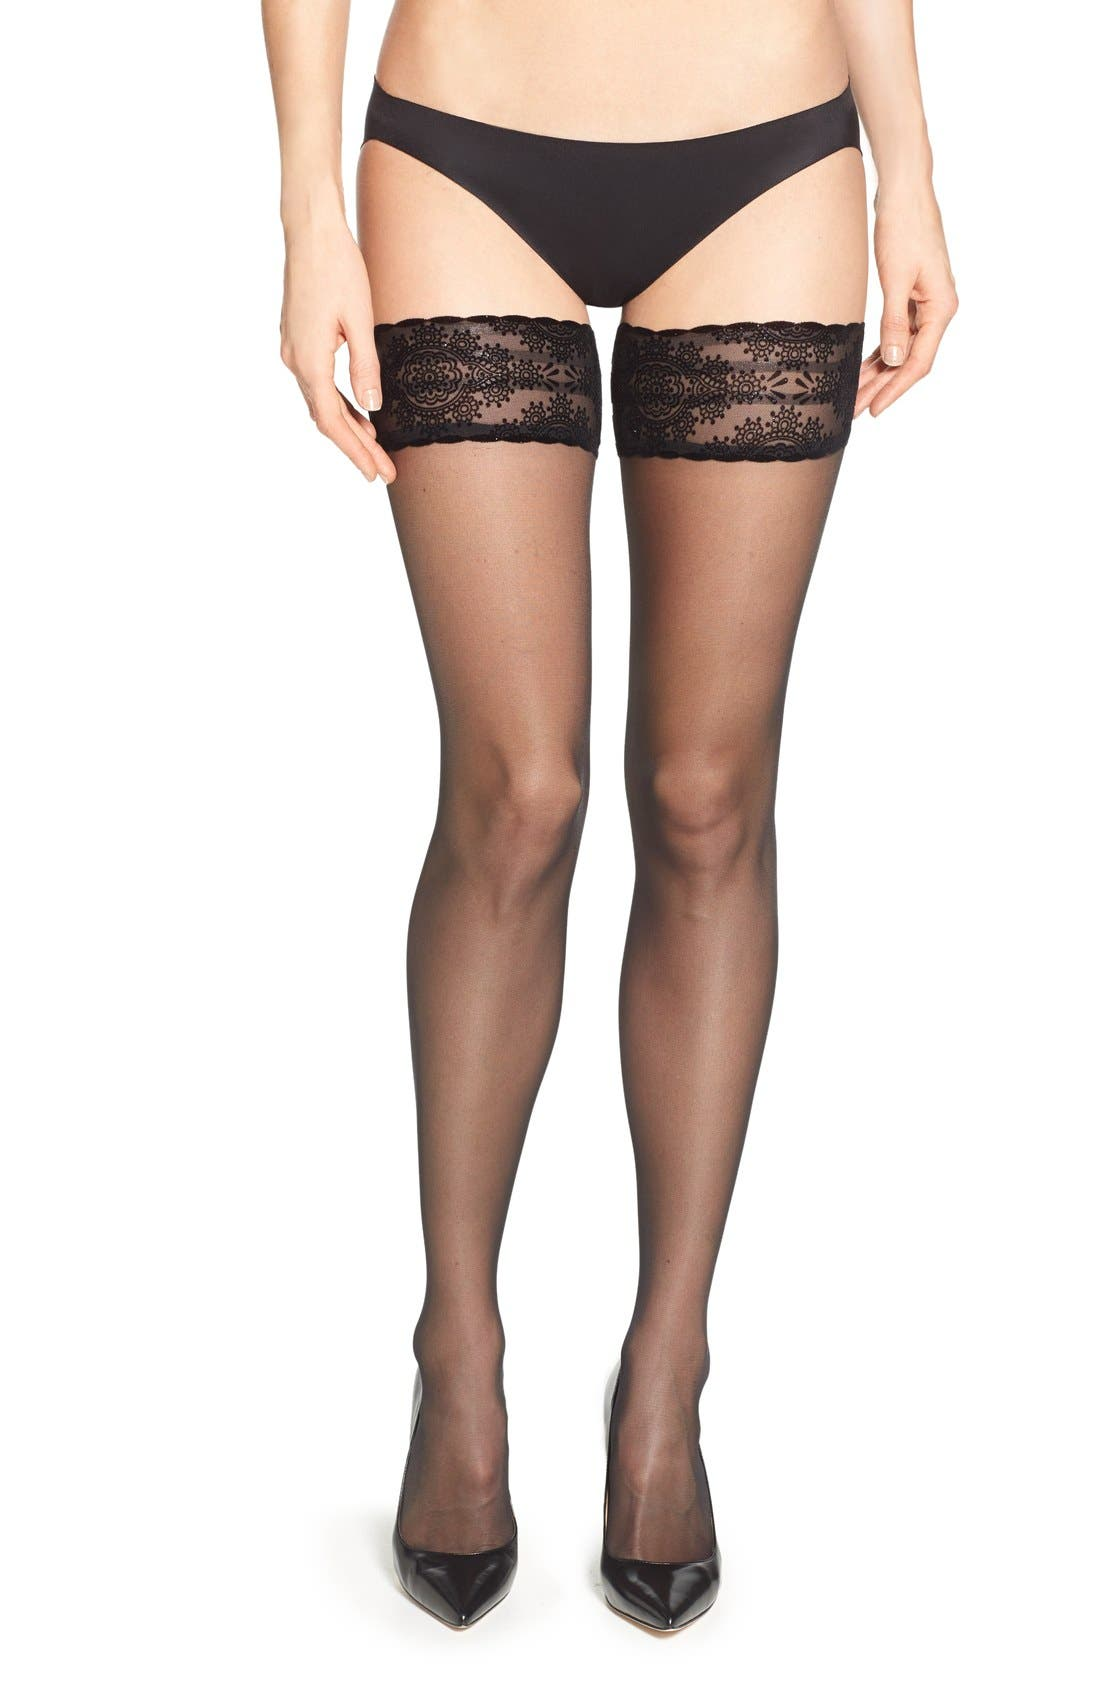 Alternate Image 1 Selected - Wolford 'Glam' Thigh High Stay Up Stockings